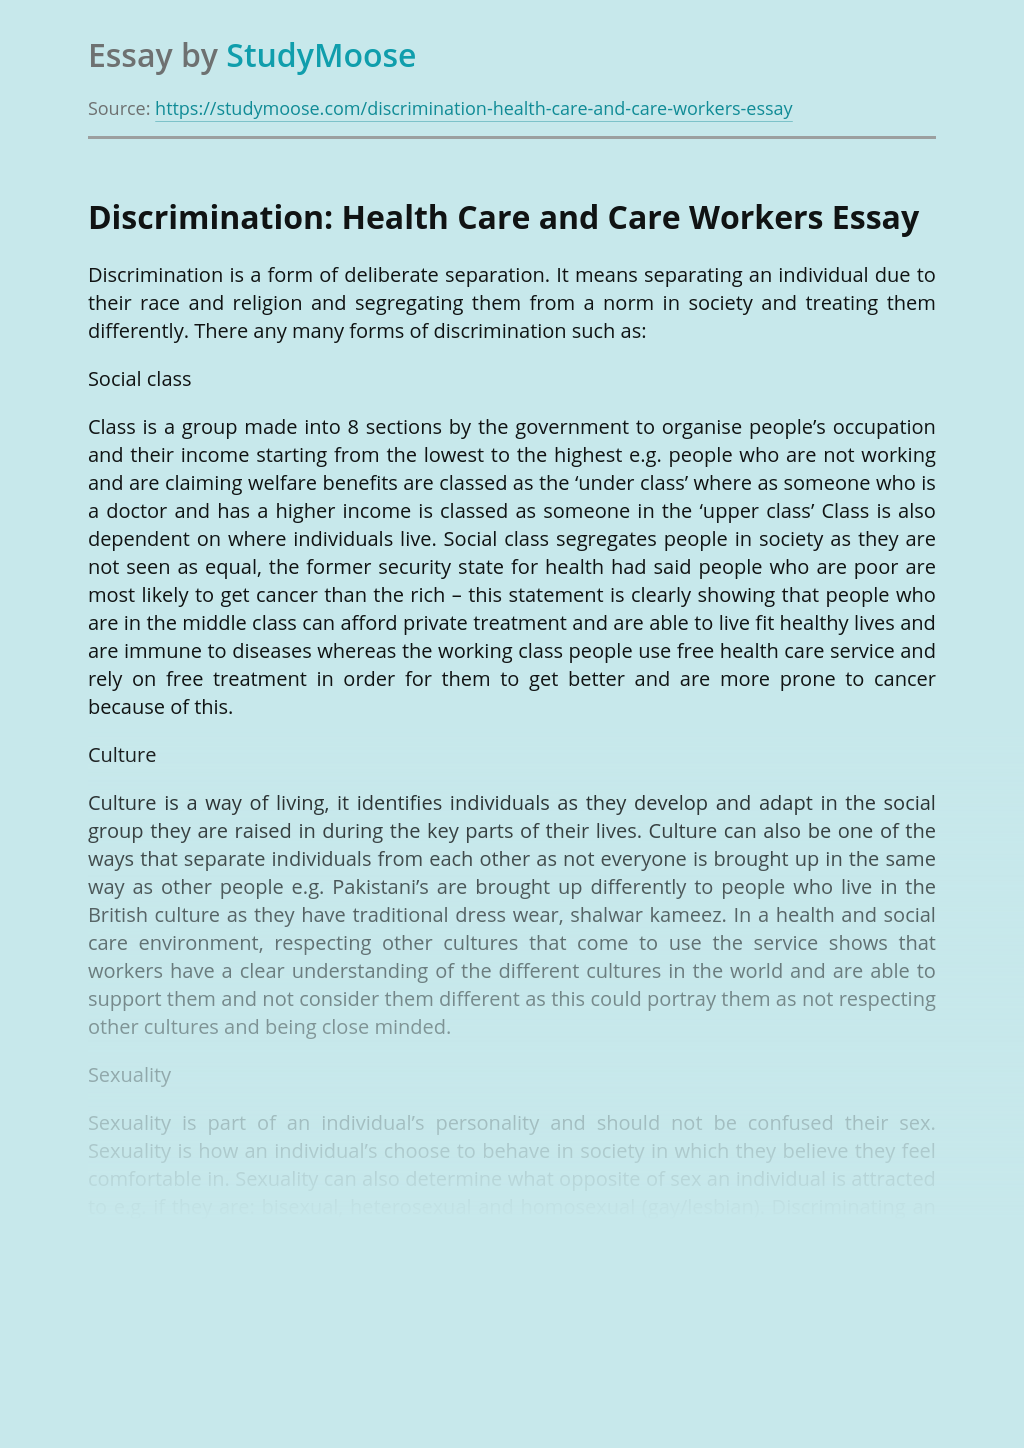 Discrimination: Health Care and Care Workers